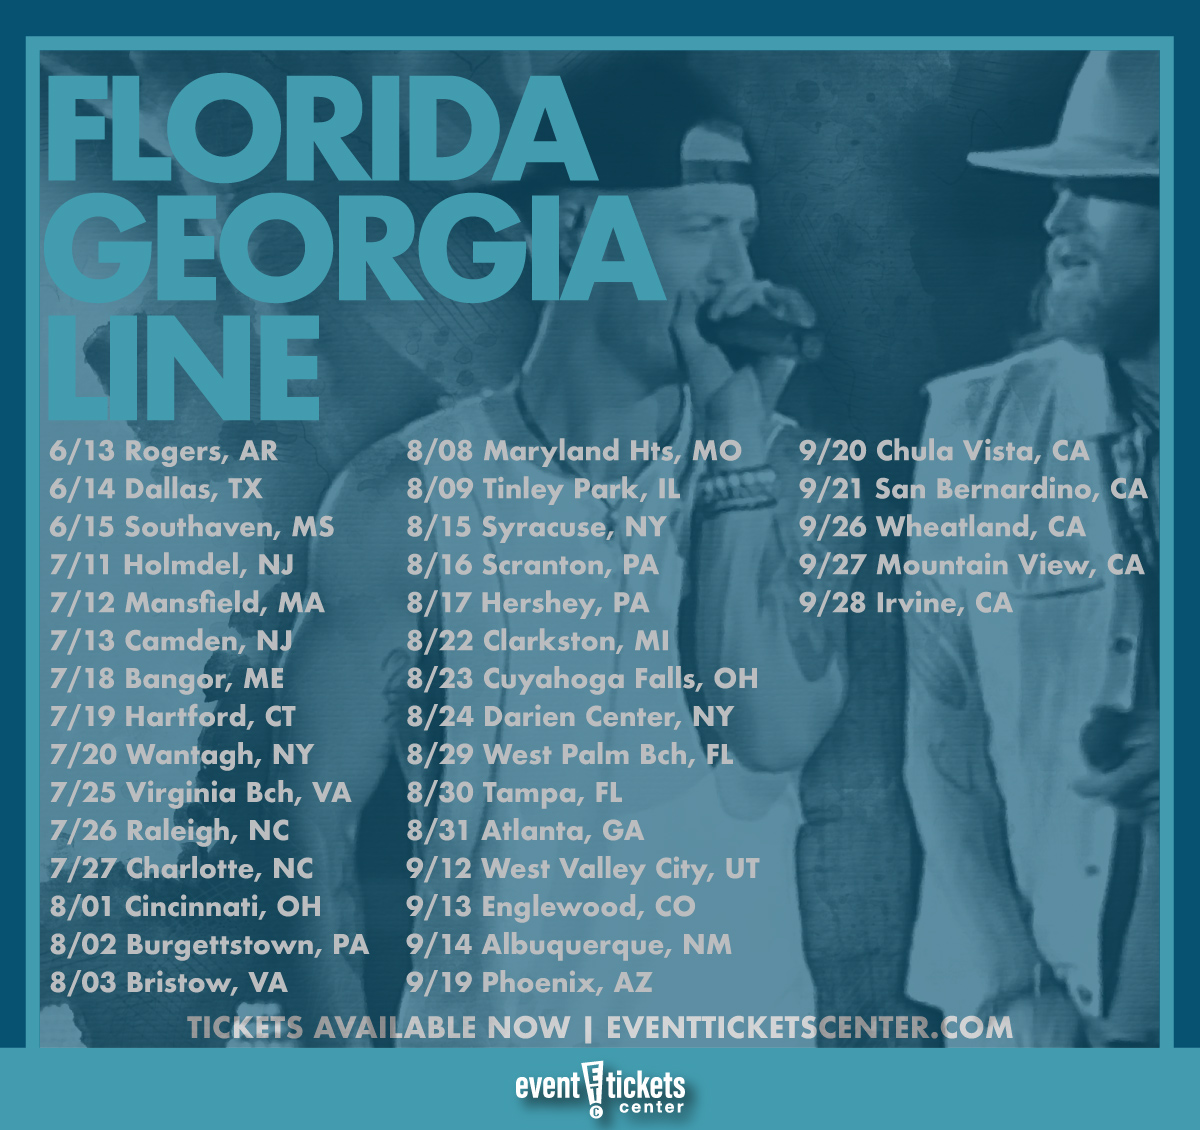 florida georgia line tour dates